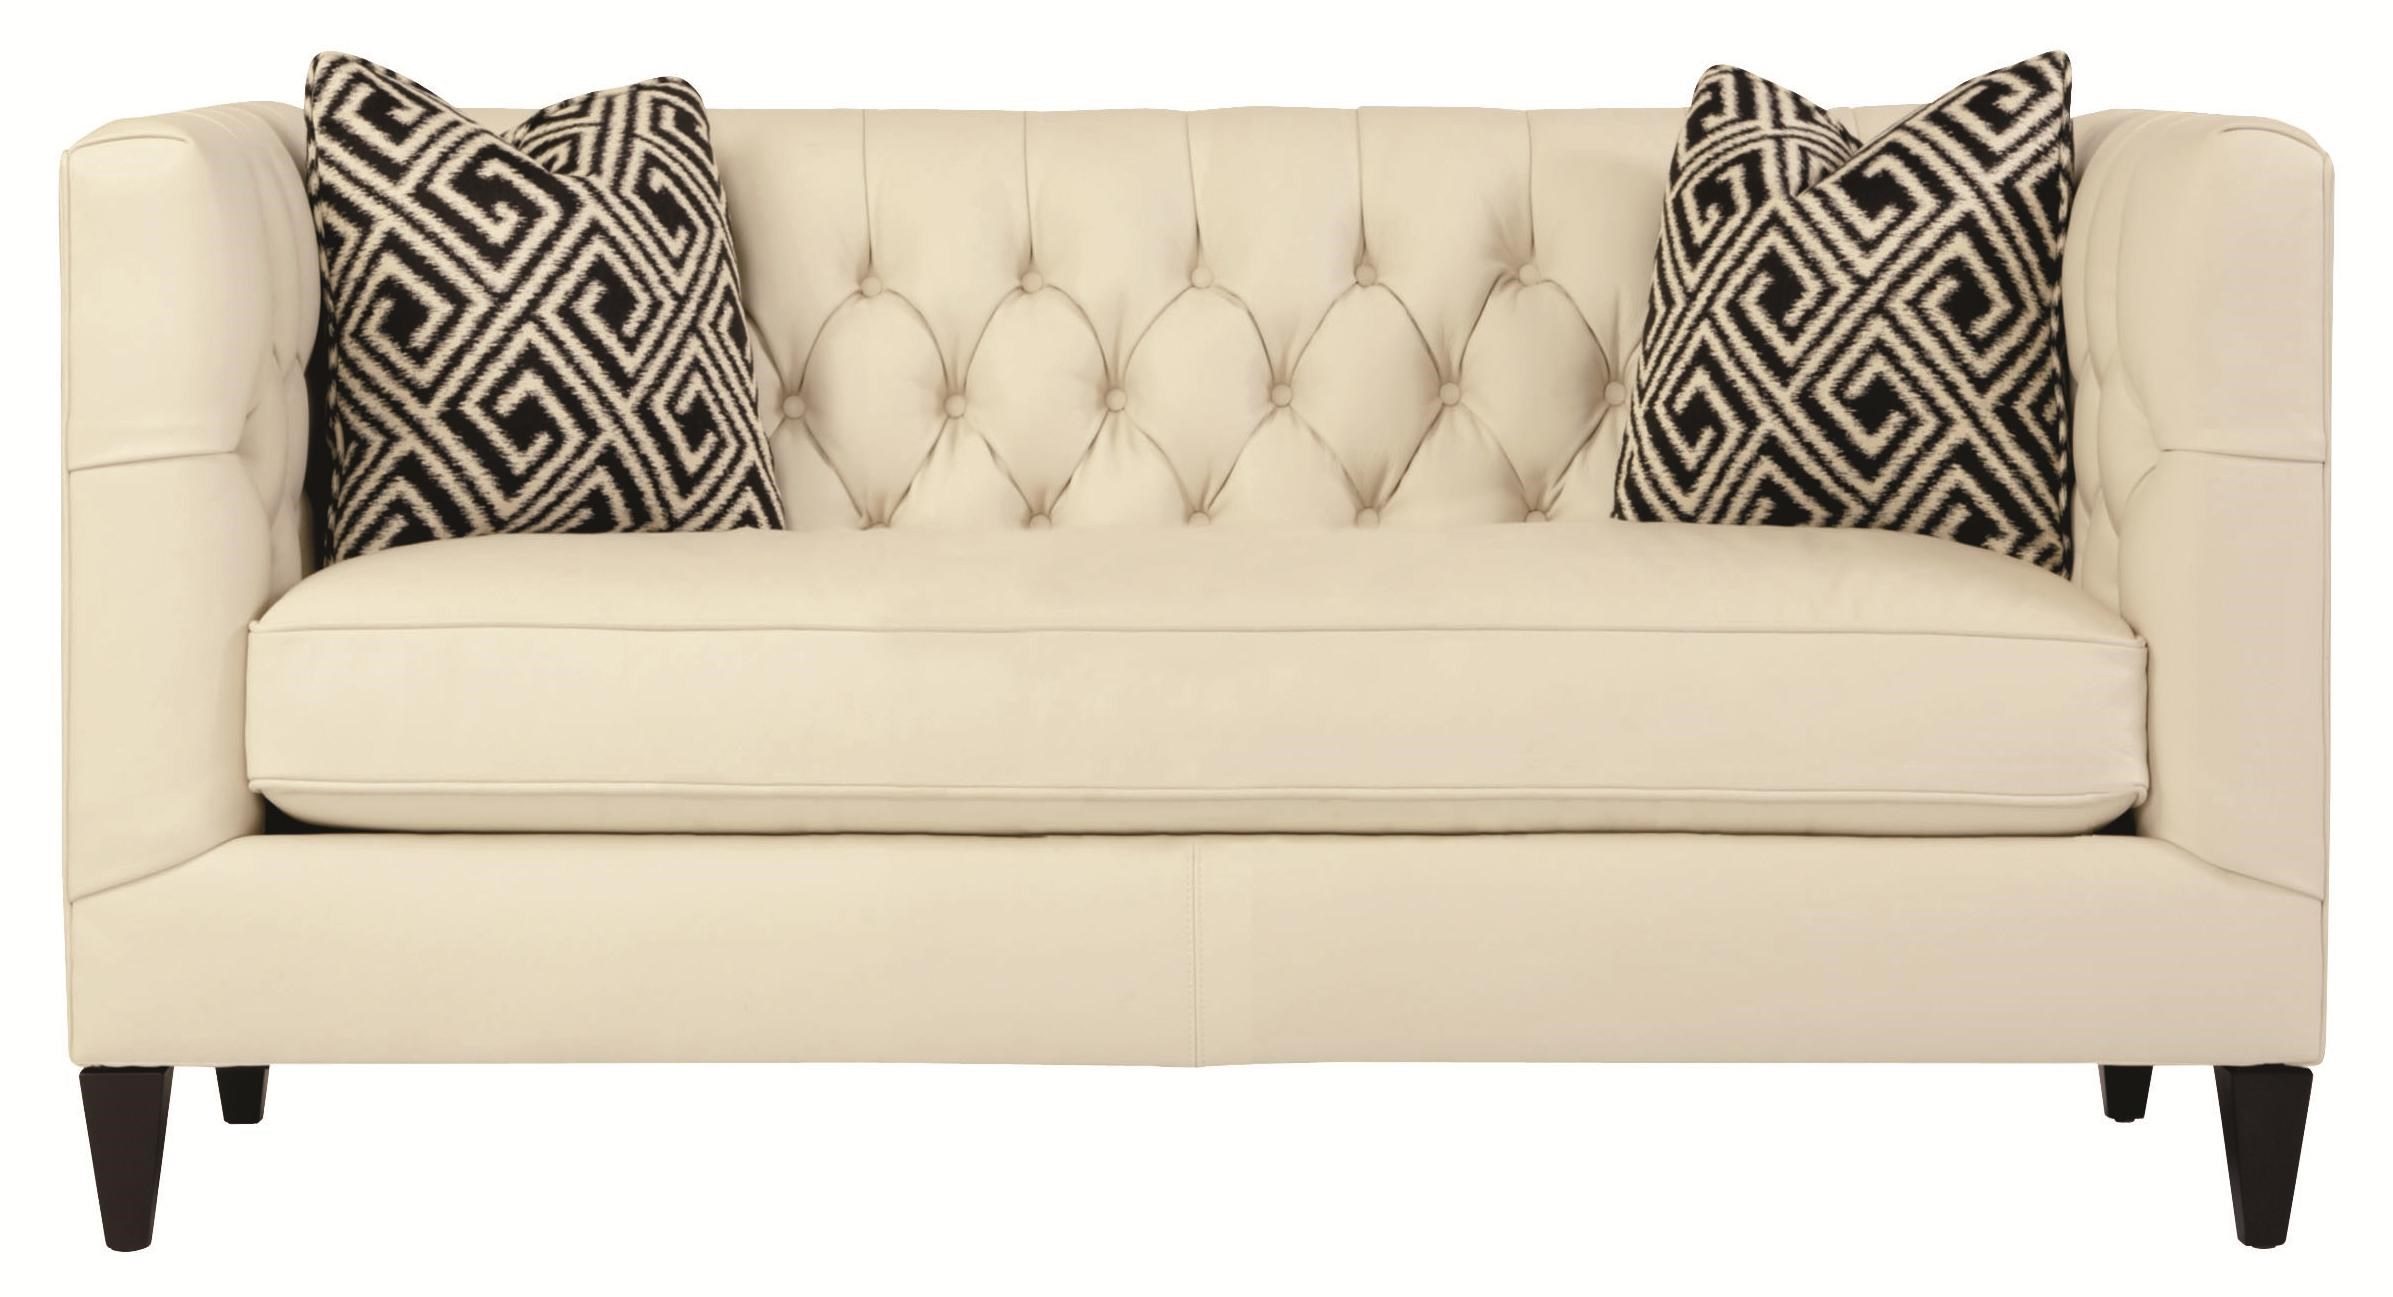 Charmant Bernhardt Interiors   Sofas Contemporary Leather Beckett Loveseat With  Button Tufted Back